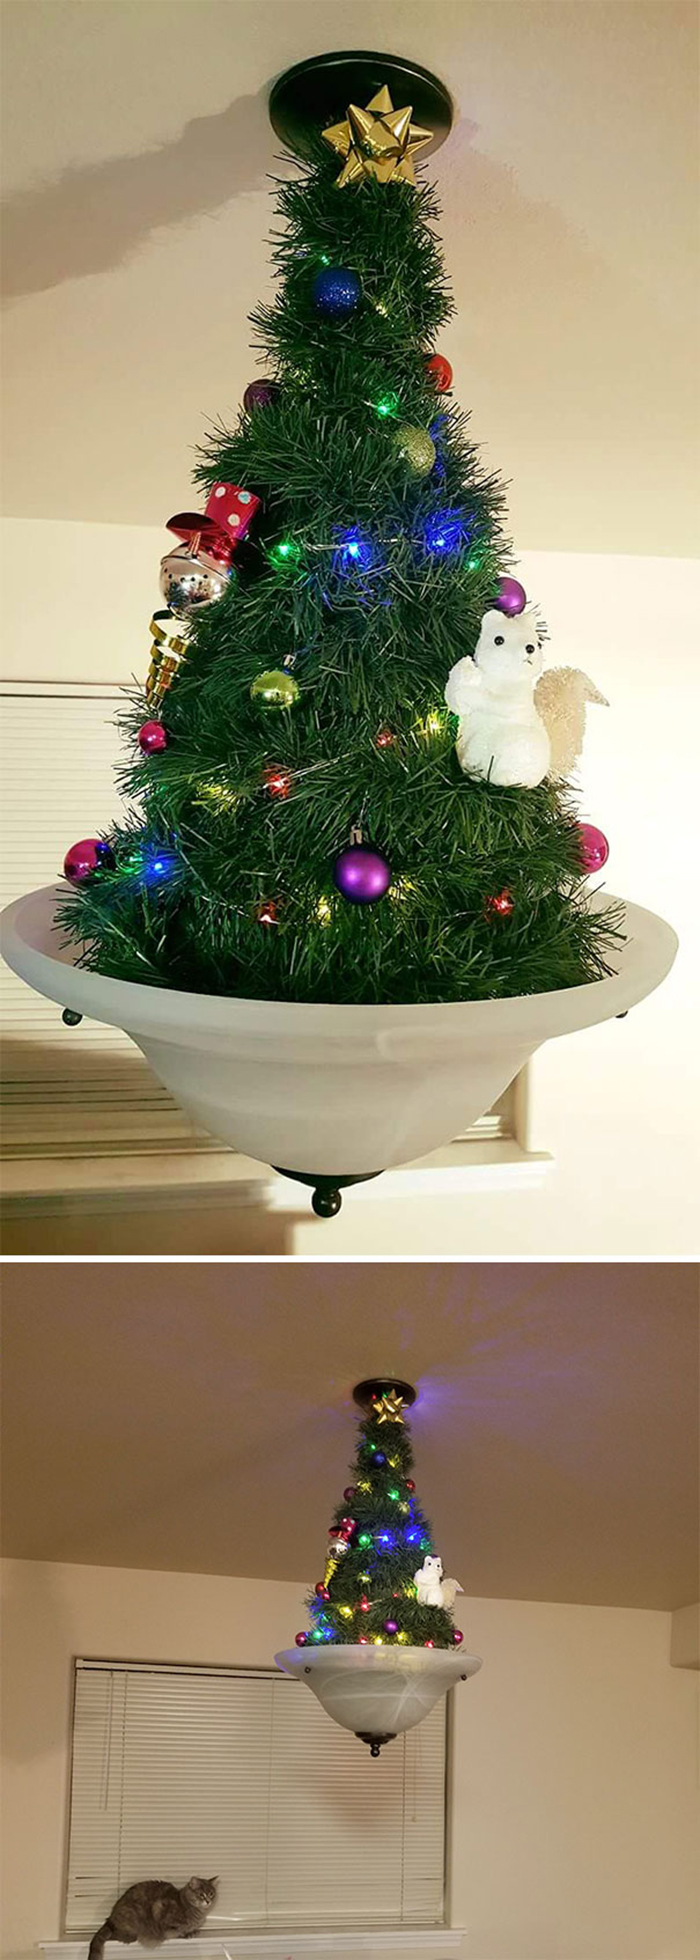 diy holiday trees cat-proof